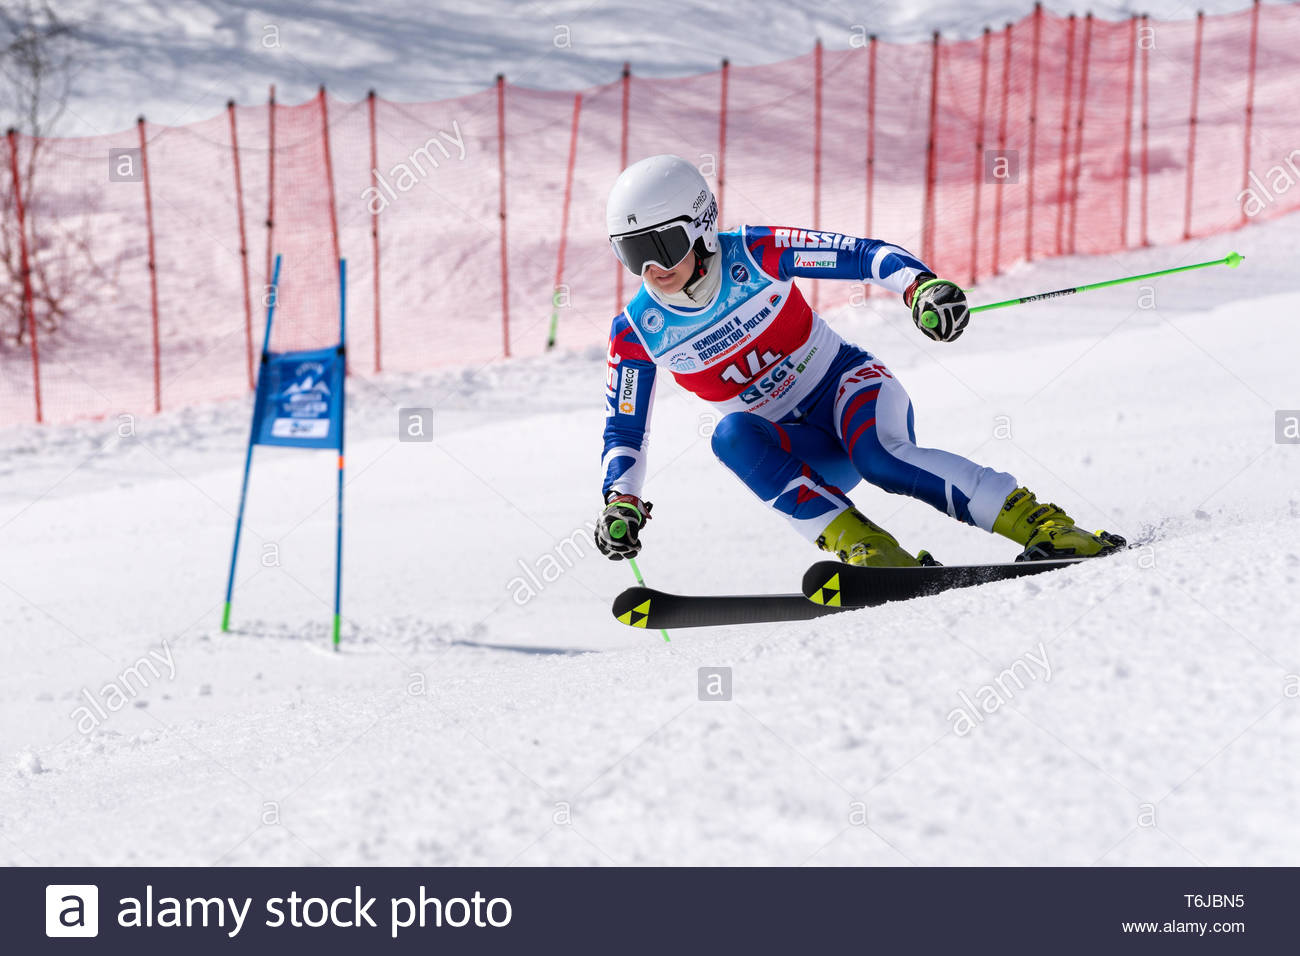 KAMCHATKA PENINSULA, RUSSIAN FEDERATION - APRIL 1, 2019: Mountain skier Shustrova Darya (St. Petersburg) skiing down snowy mountain slope. Russian Wom - Stock Image